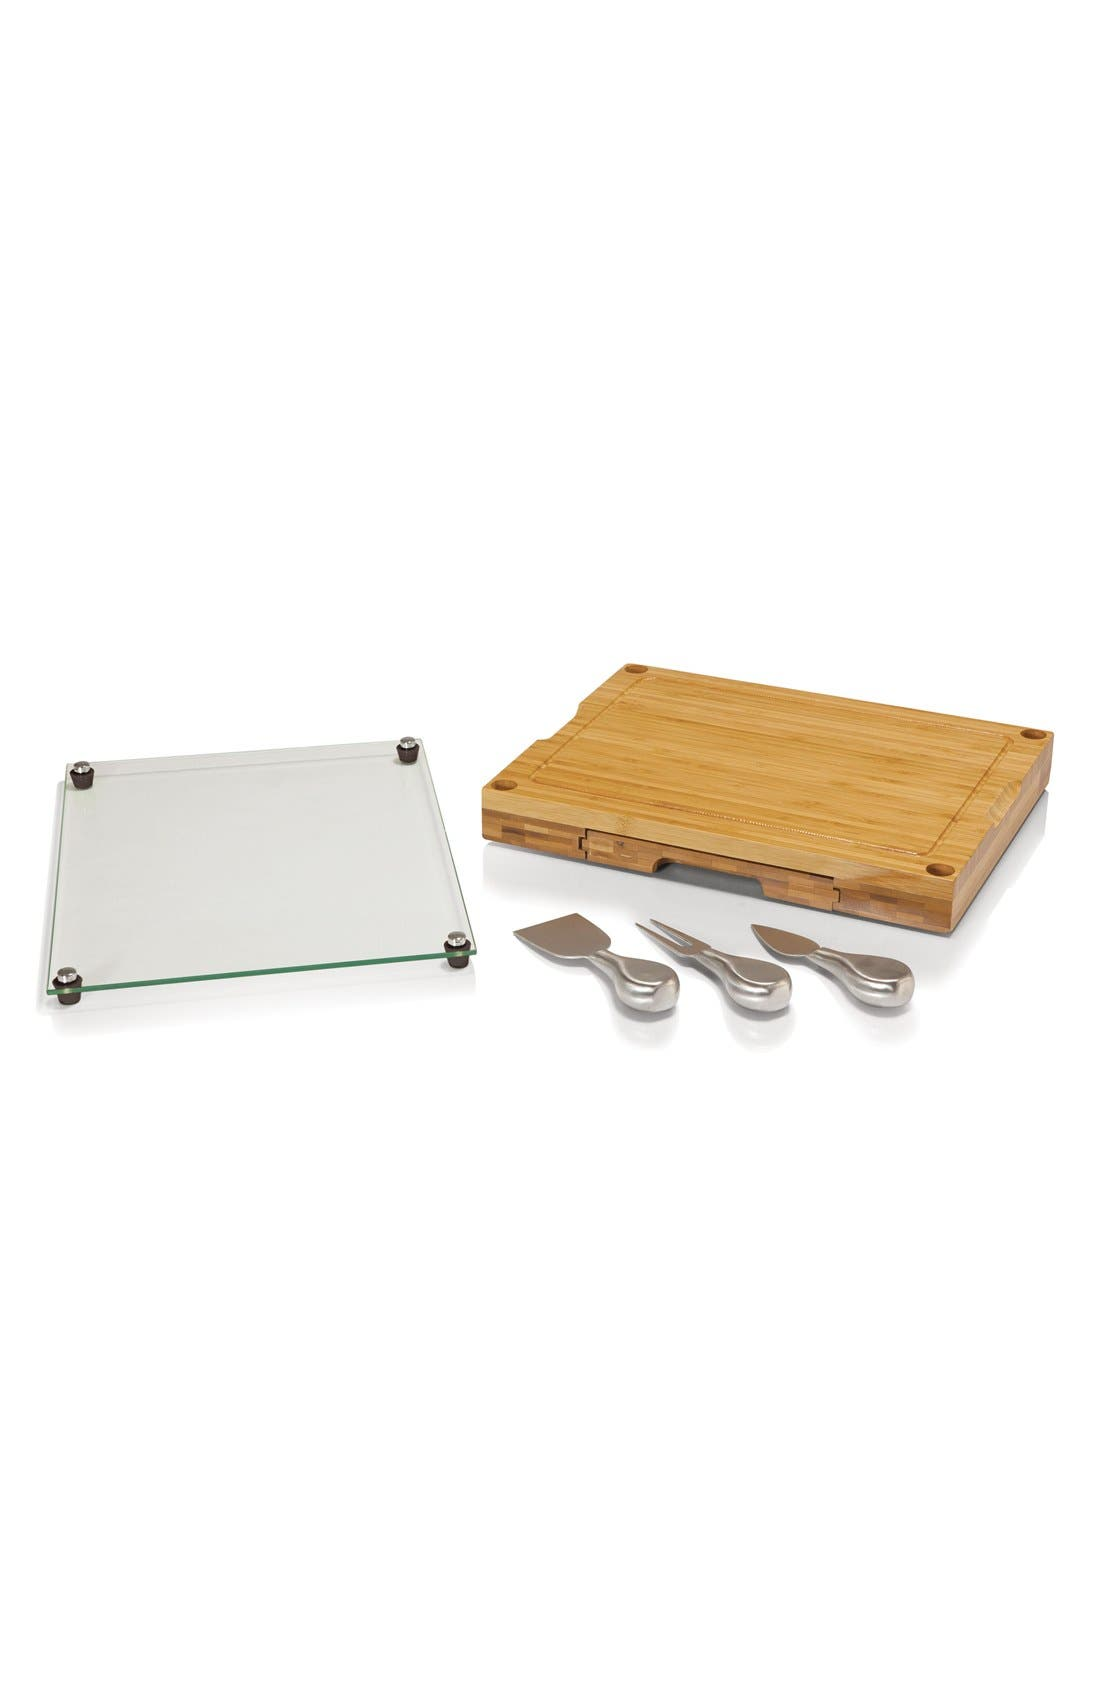 Main Image - Picnic Time 'Concerto' Cutting Board Set